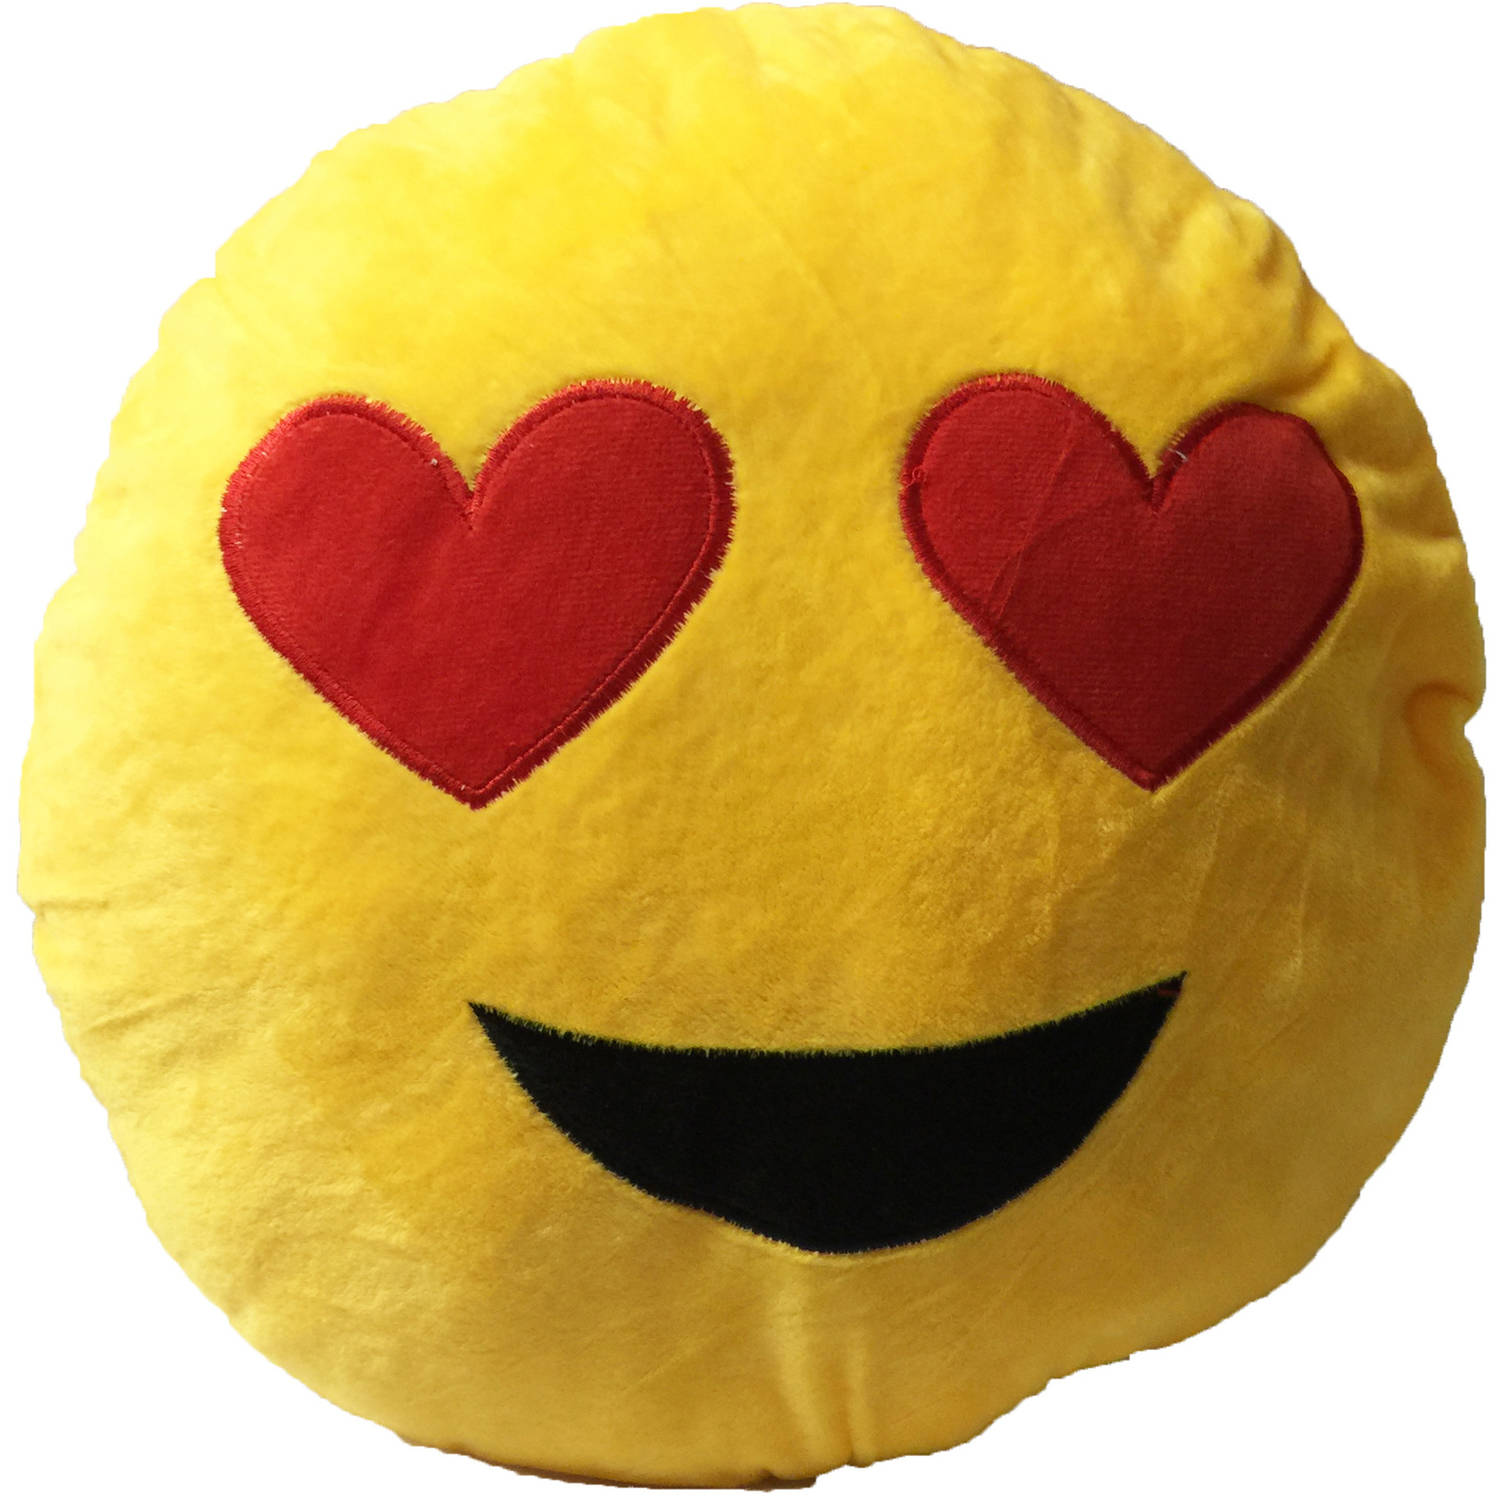 Smily Face with 2 Heart Eyes Emoji Cushion